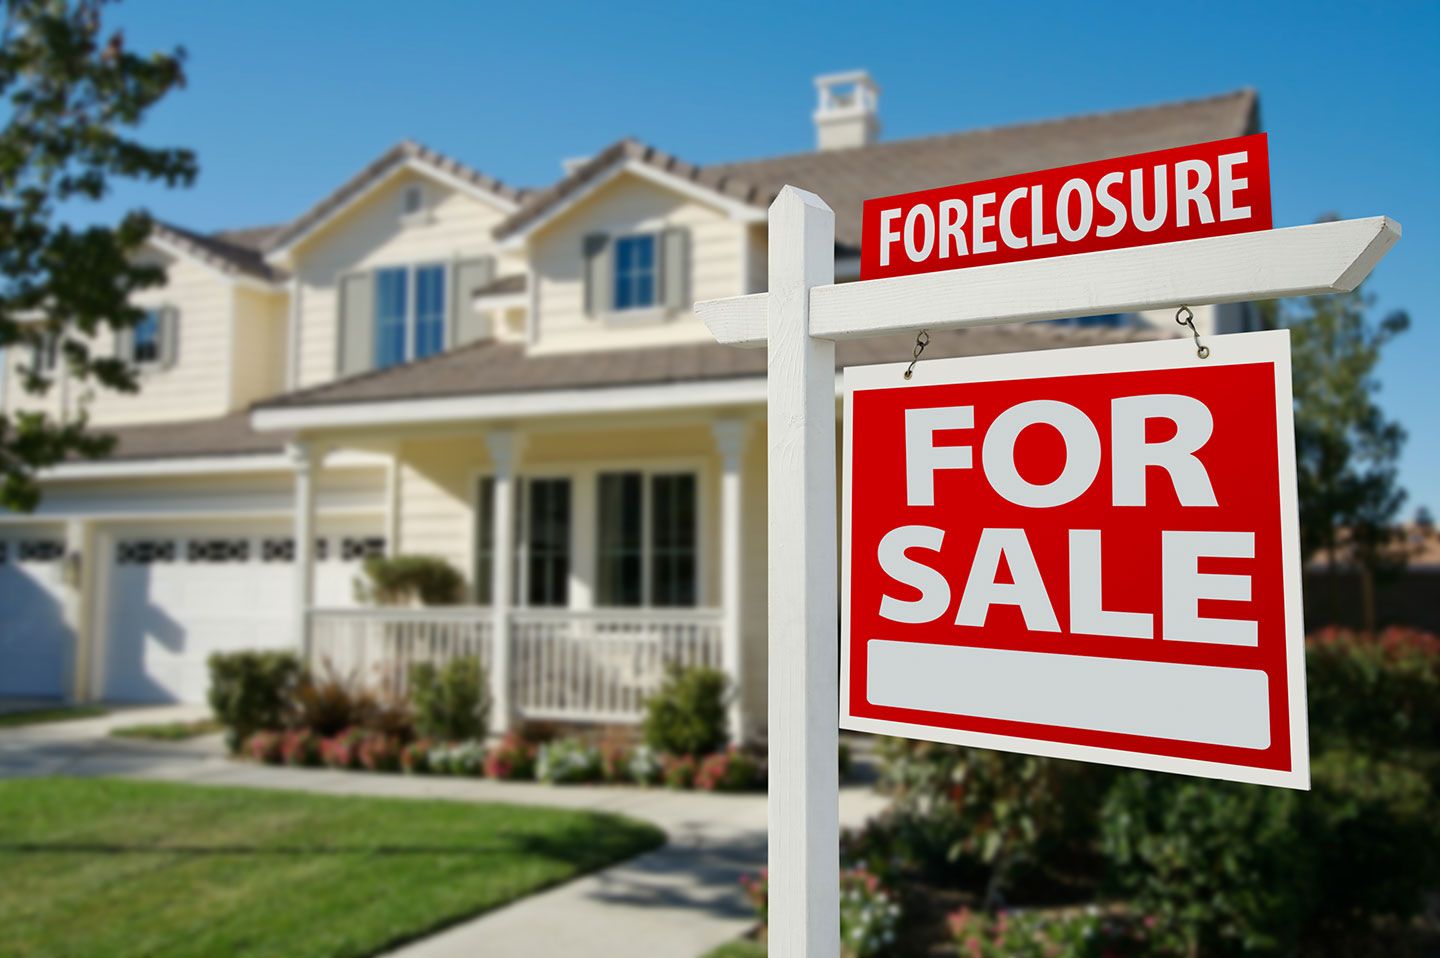 Monthly Foreclosure Sales